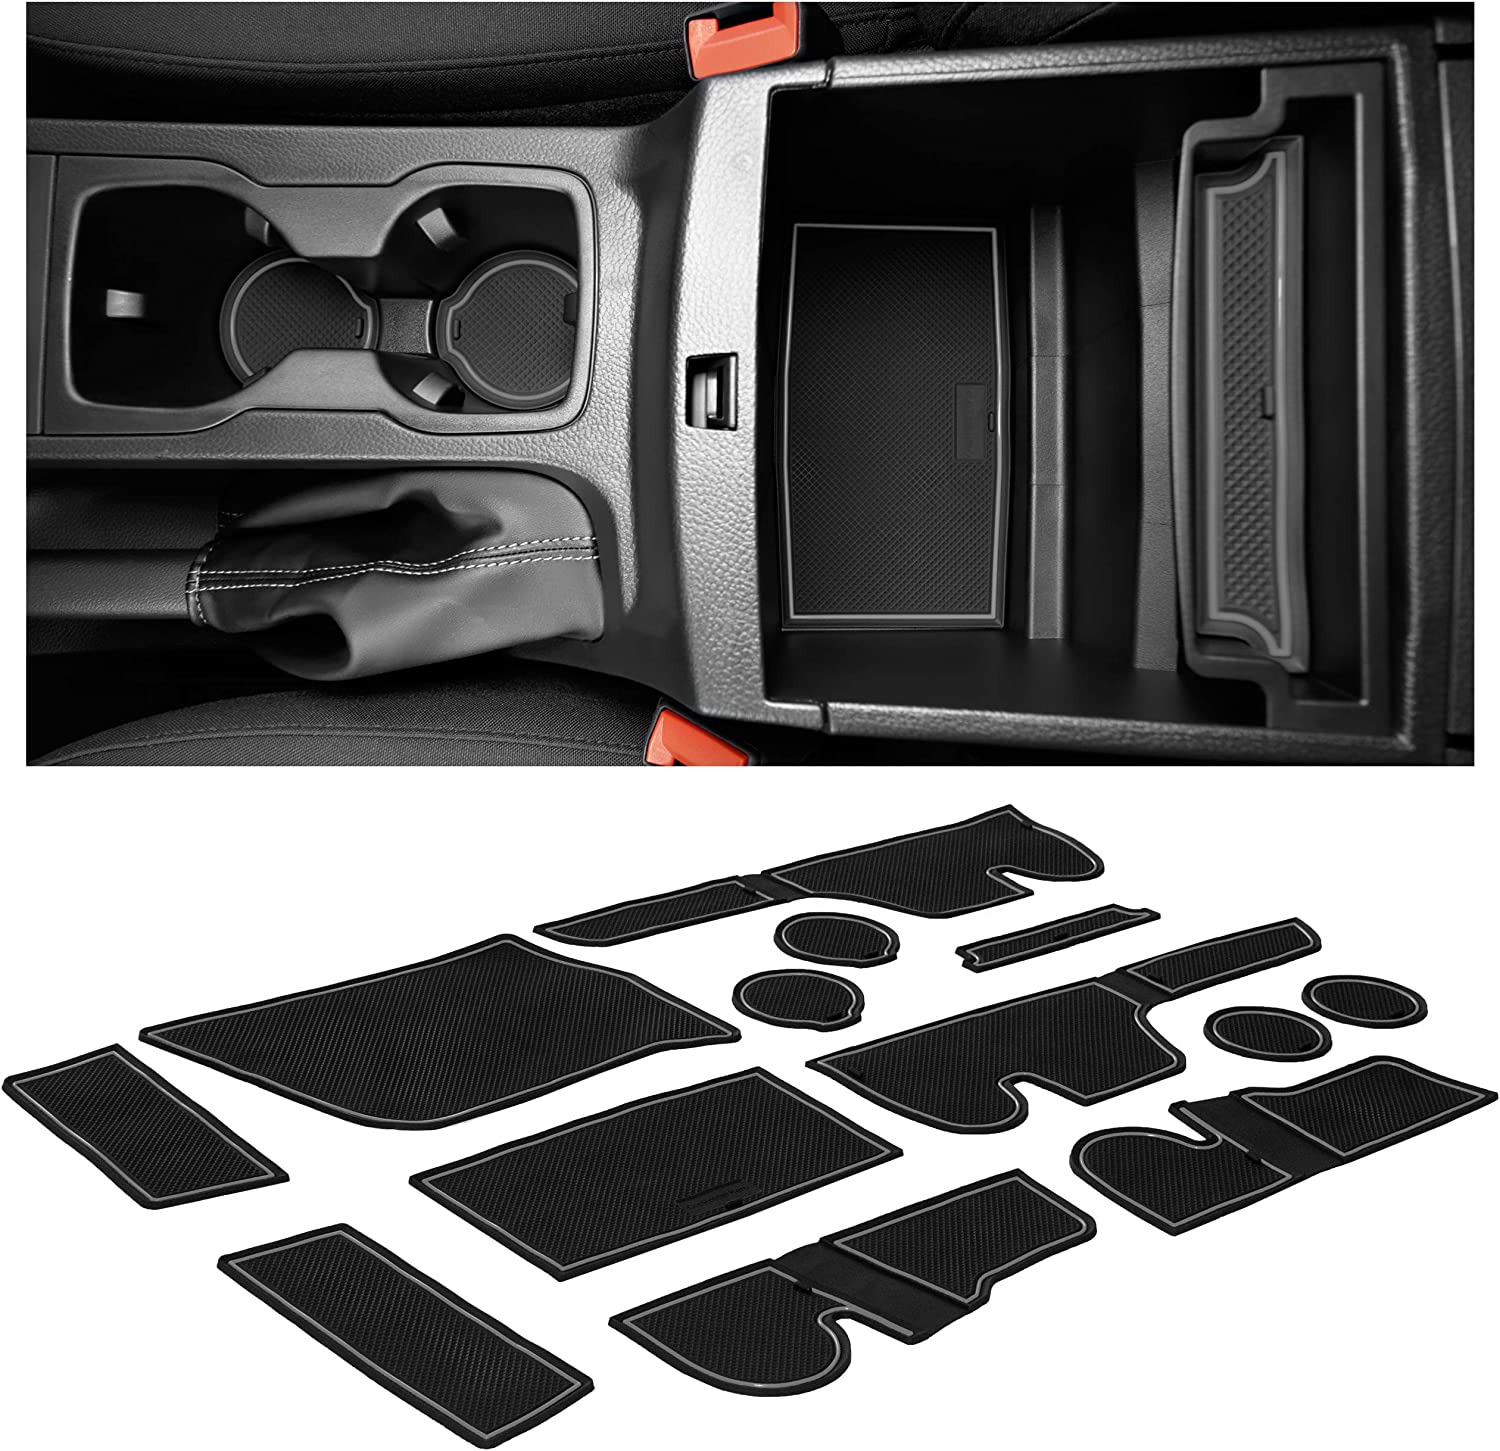 CupHolderHero for Ford Ranger Accessories 2019-2021 Interior Non-Slip Anti Dust Cup Holder Inserts SuperCab /– 4 Passenger Gray Trim Center Console Liner Mats Door Pocket Liners 13-pc Set